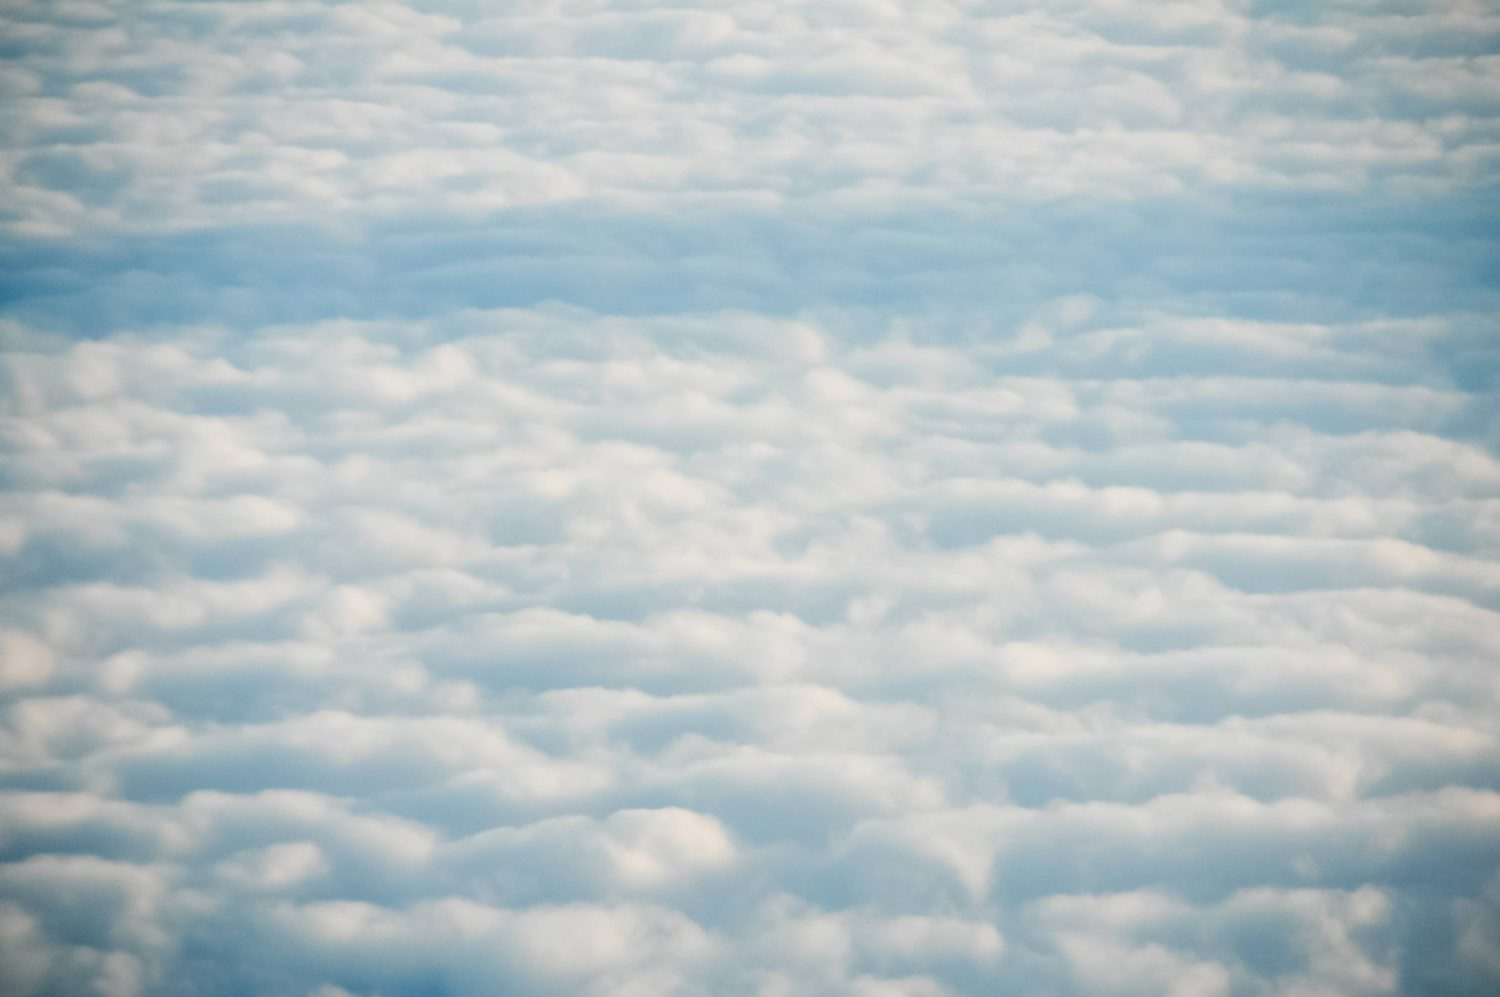 Cloudy sky seen from above